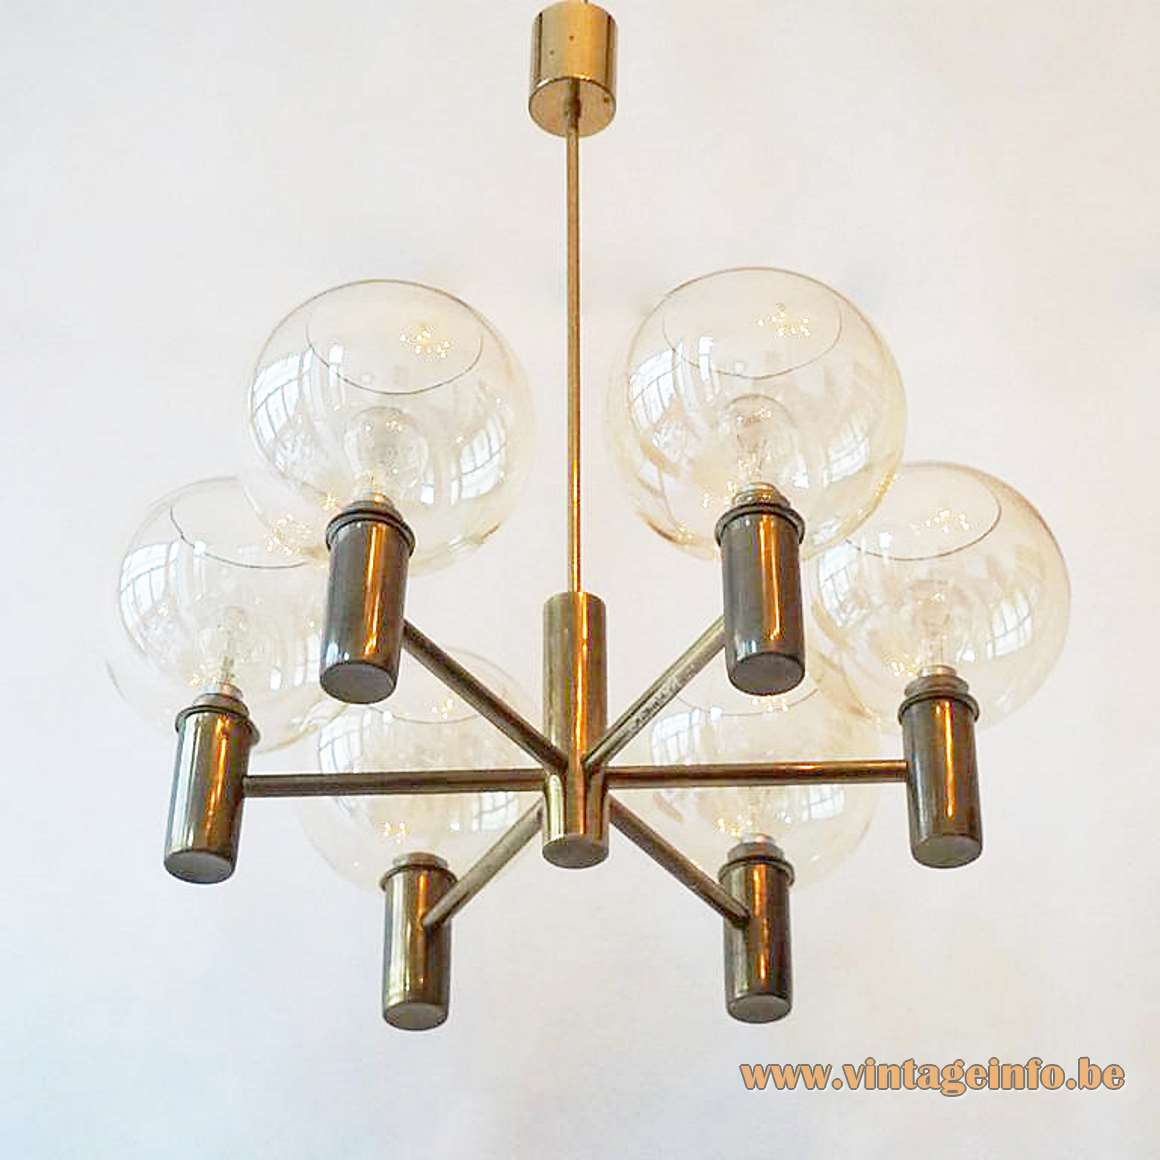 Hans-Agne Jakobsson Smoked Globes Chandelier